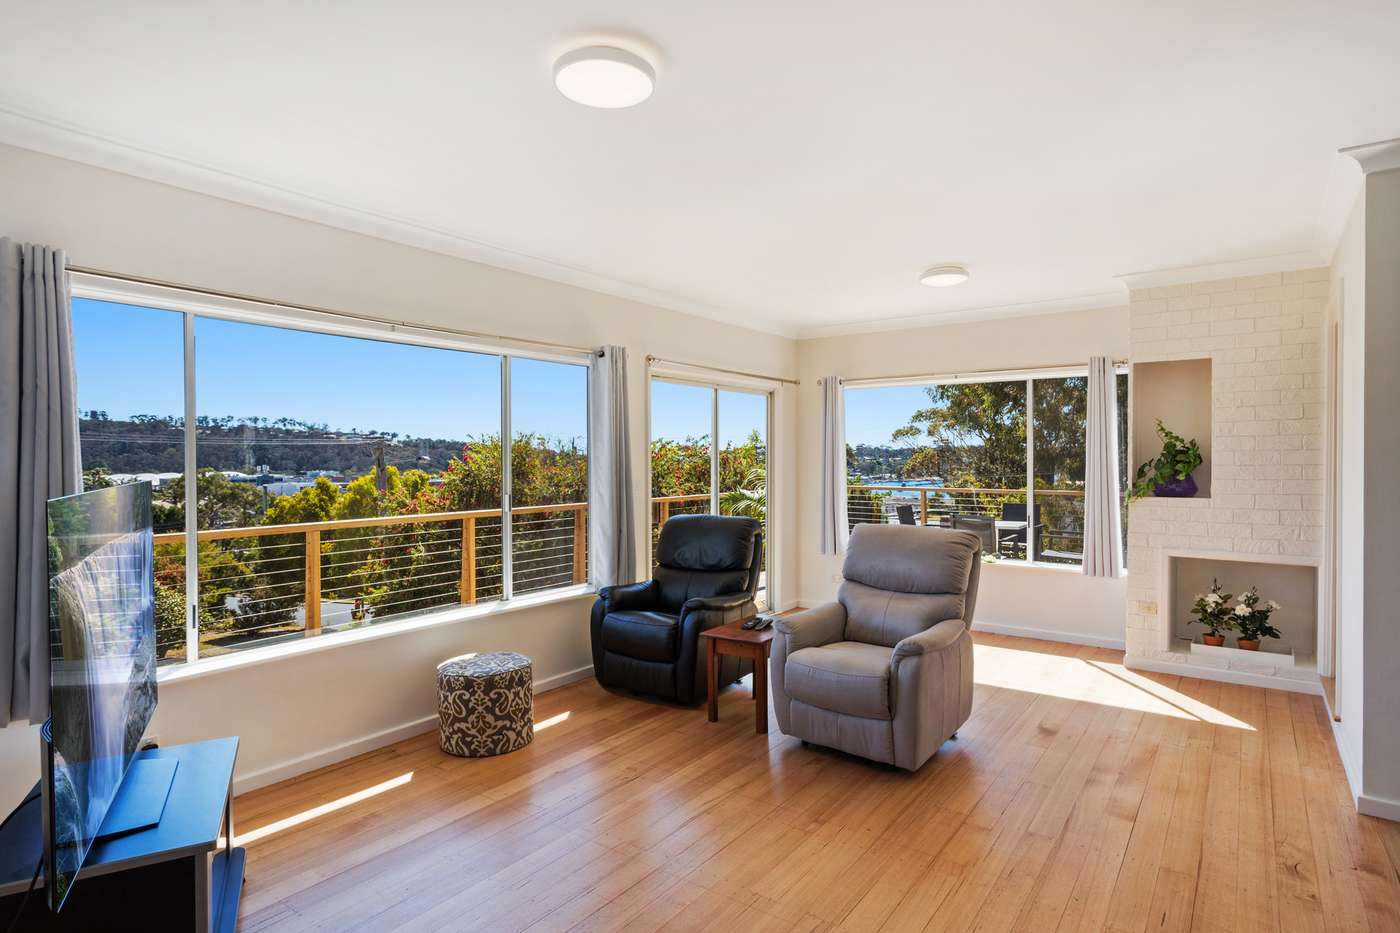 Main view of Homely house listing, 2 Bronwyn Close, Merimbula, NSW 2548